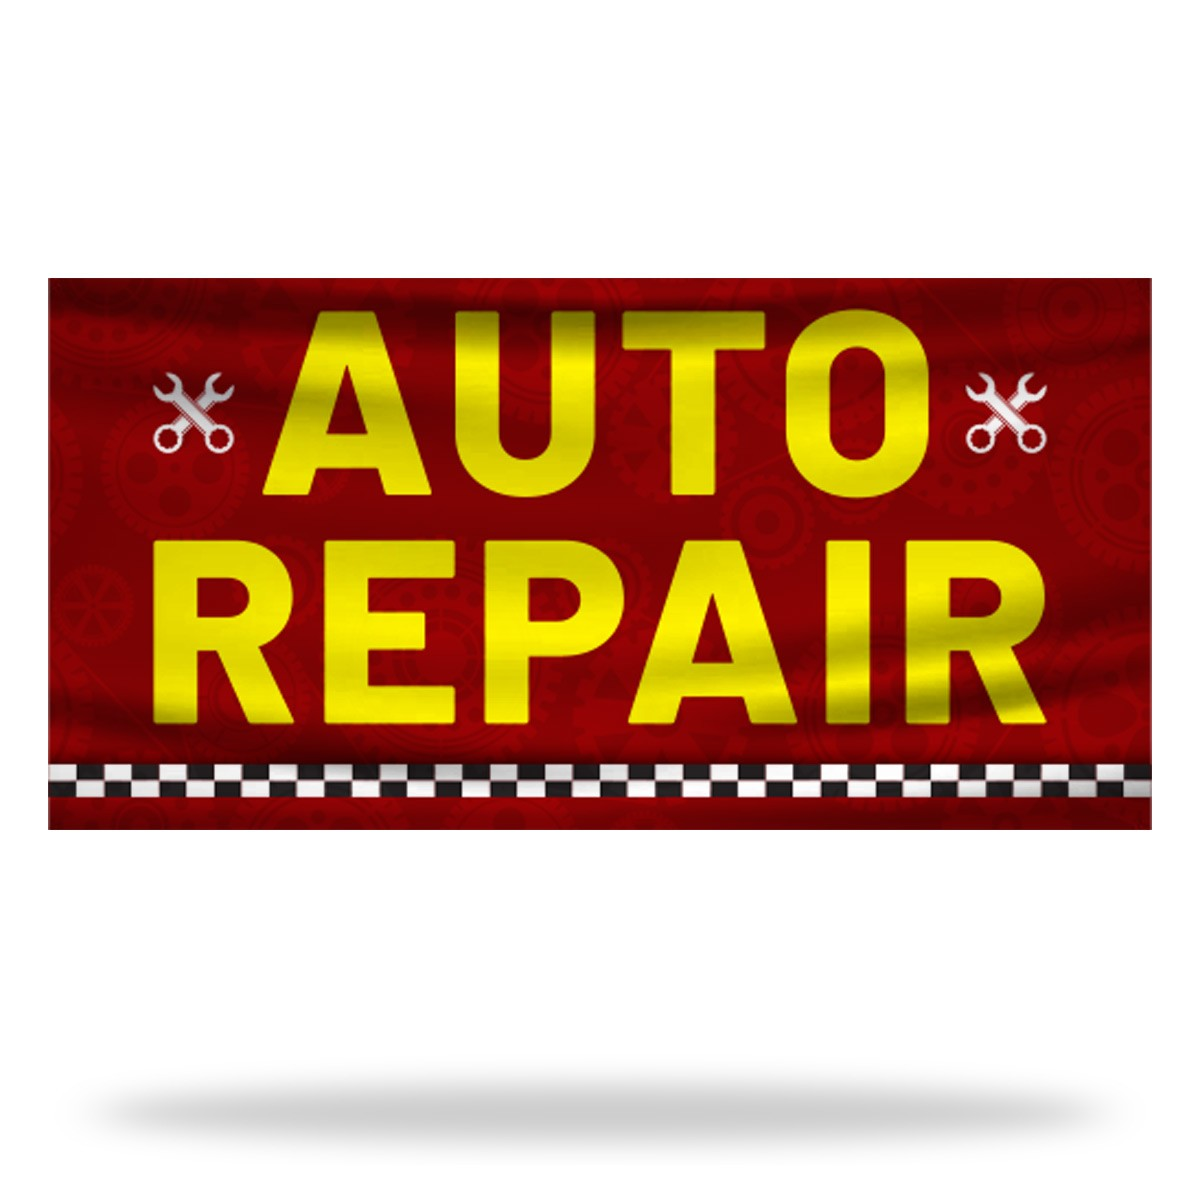 Auto Repair Flags & Banners Design 02